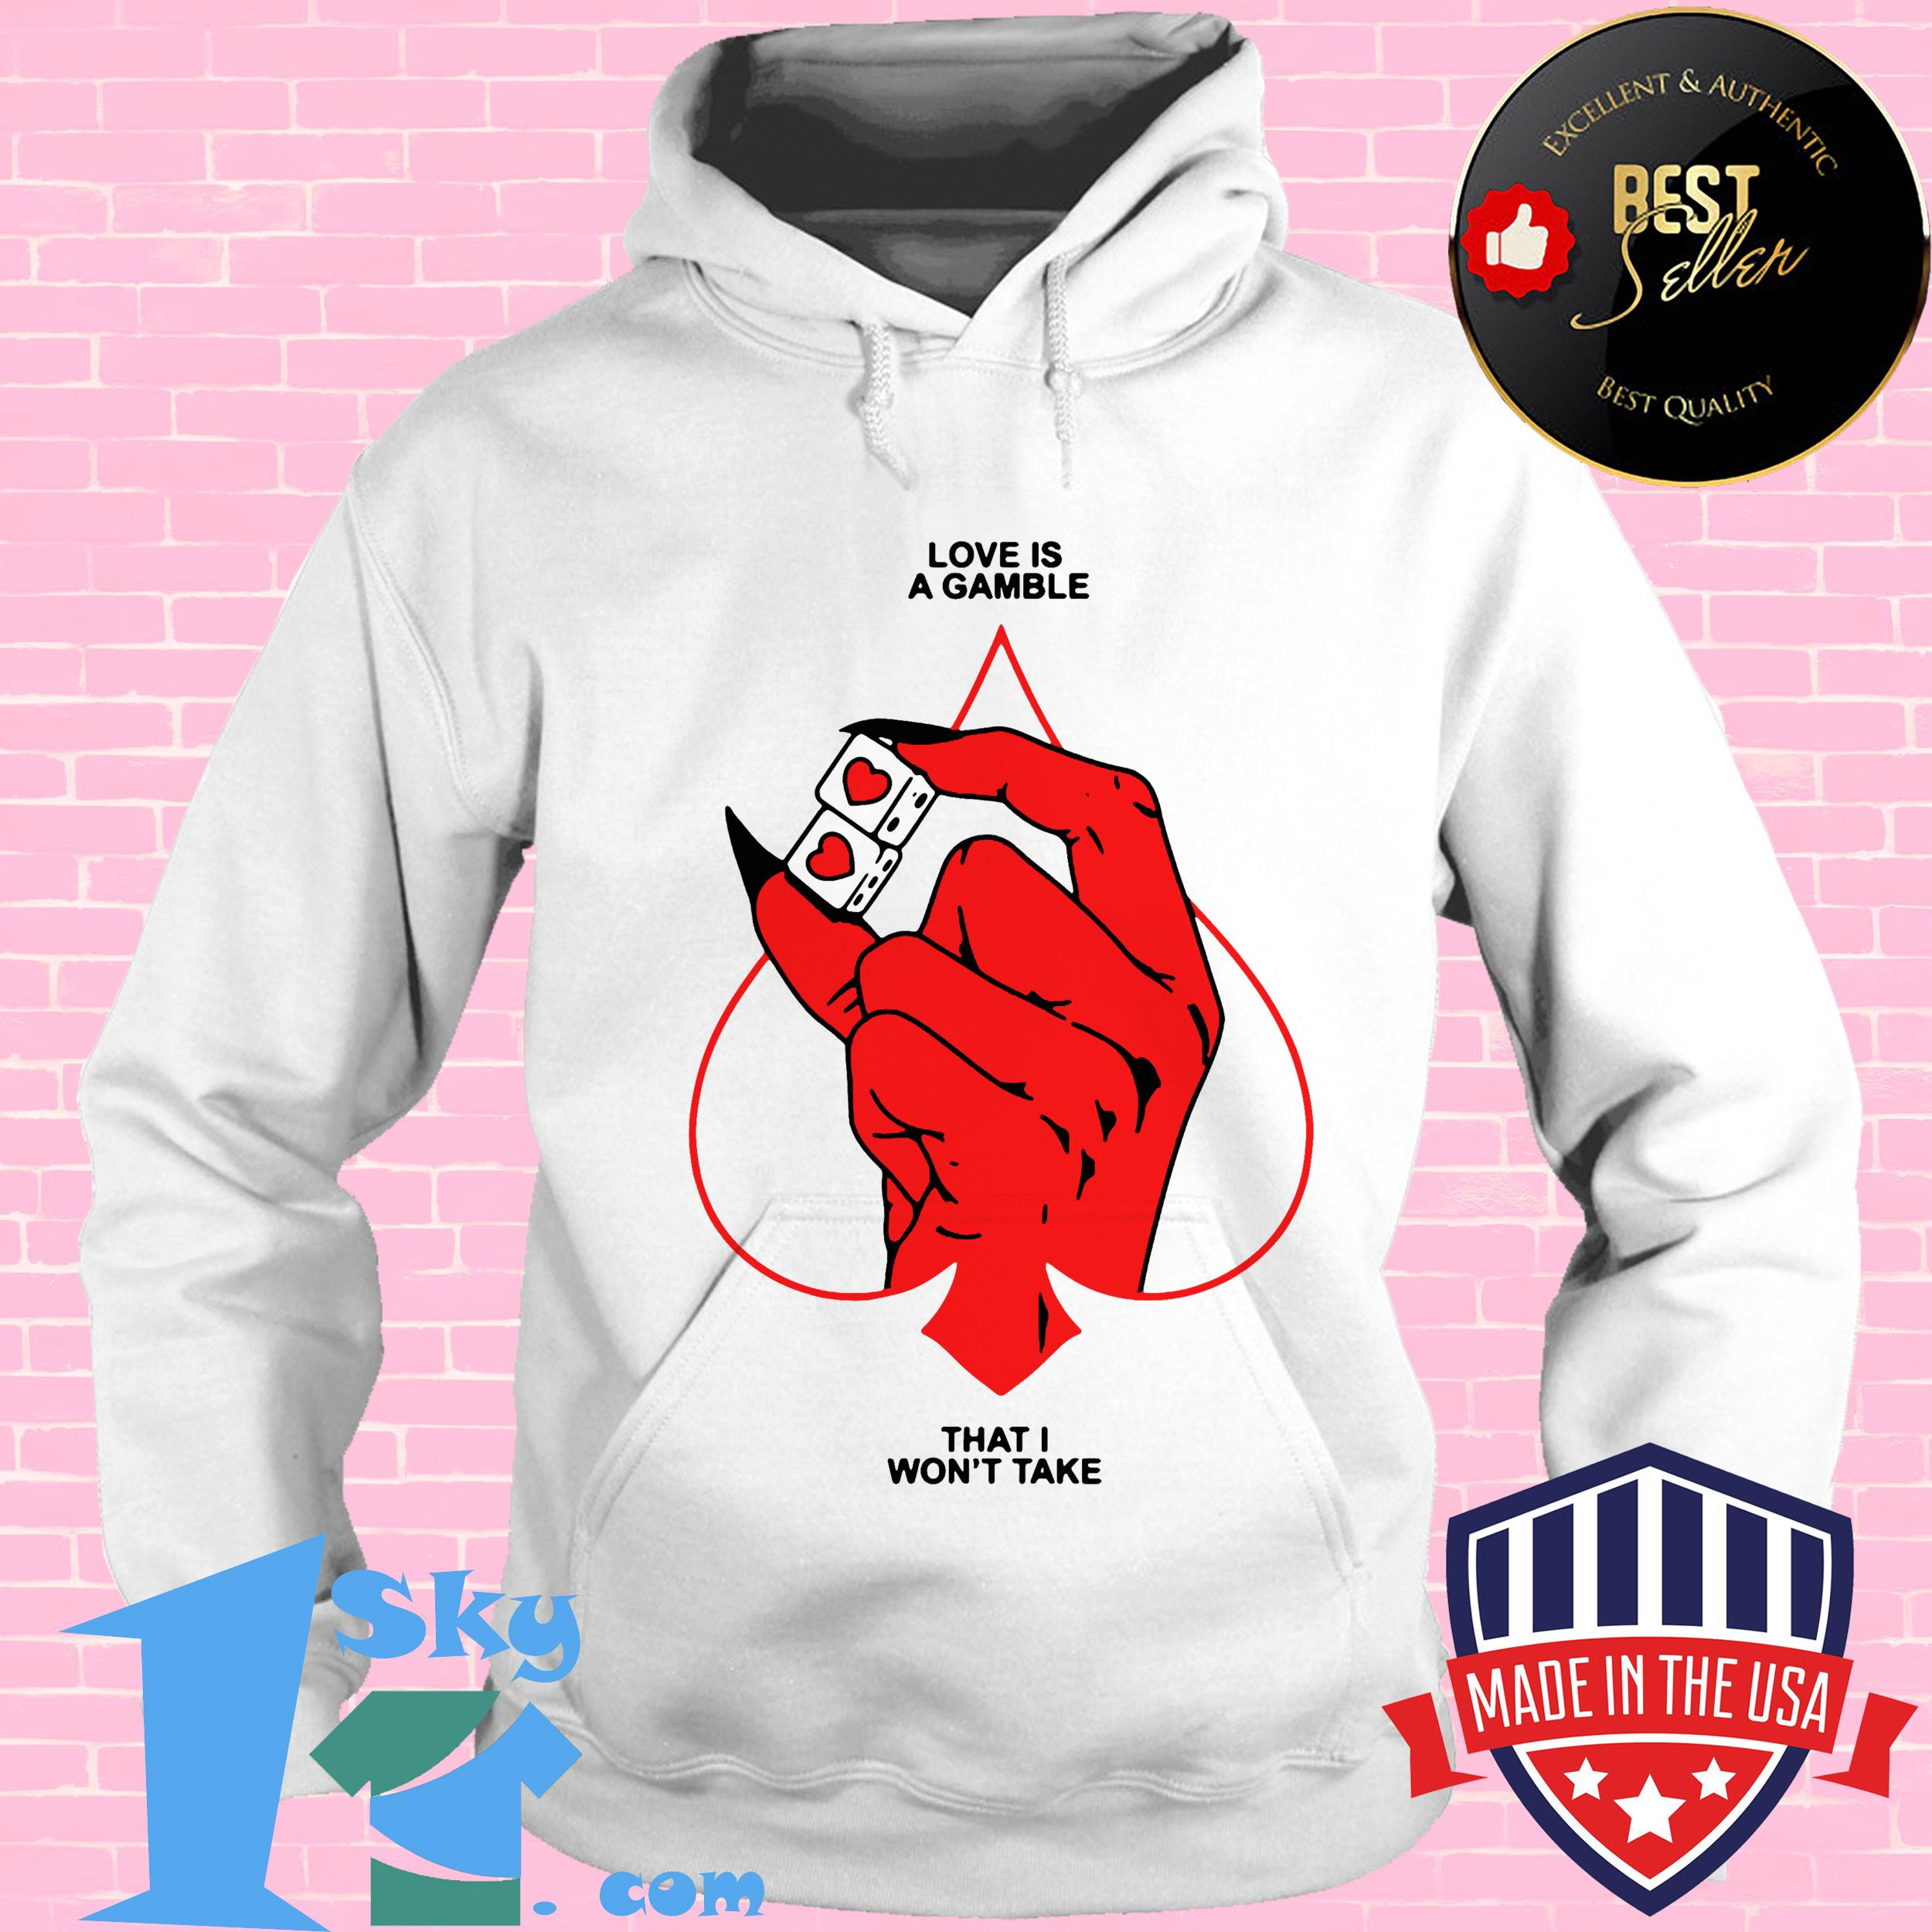 love is a gamble that i wont take hoodie - Love Is A Gamble That I Won't Take shirt